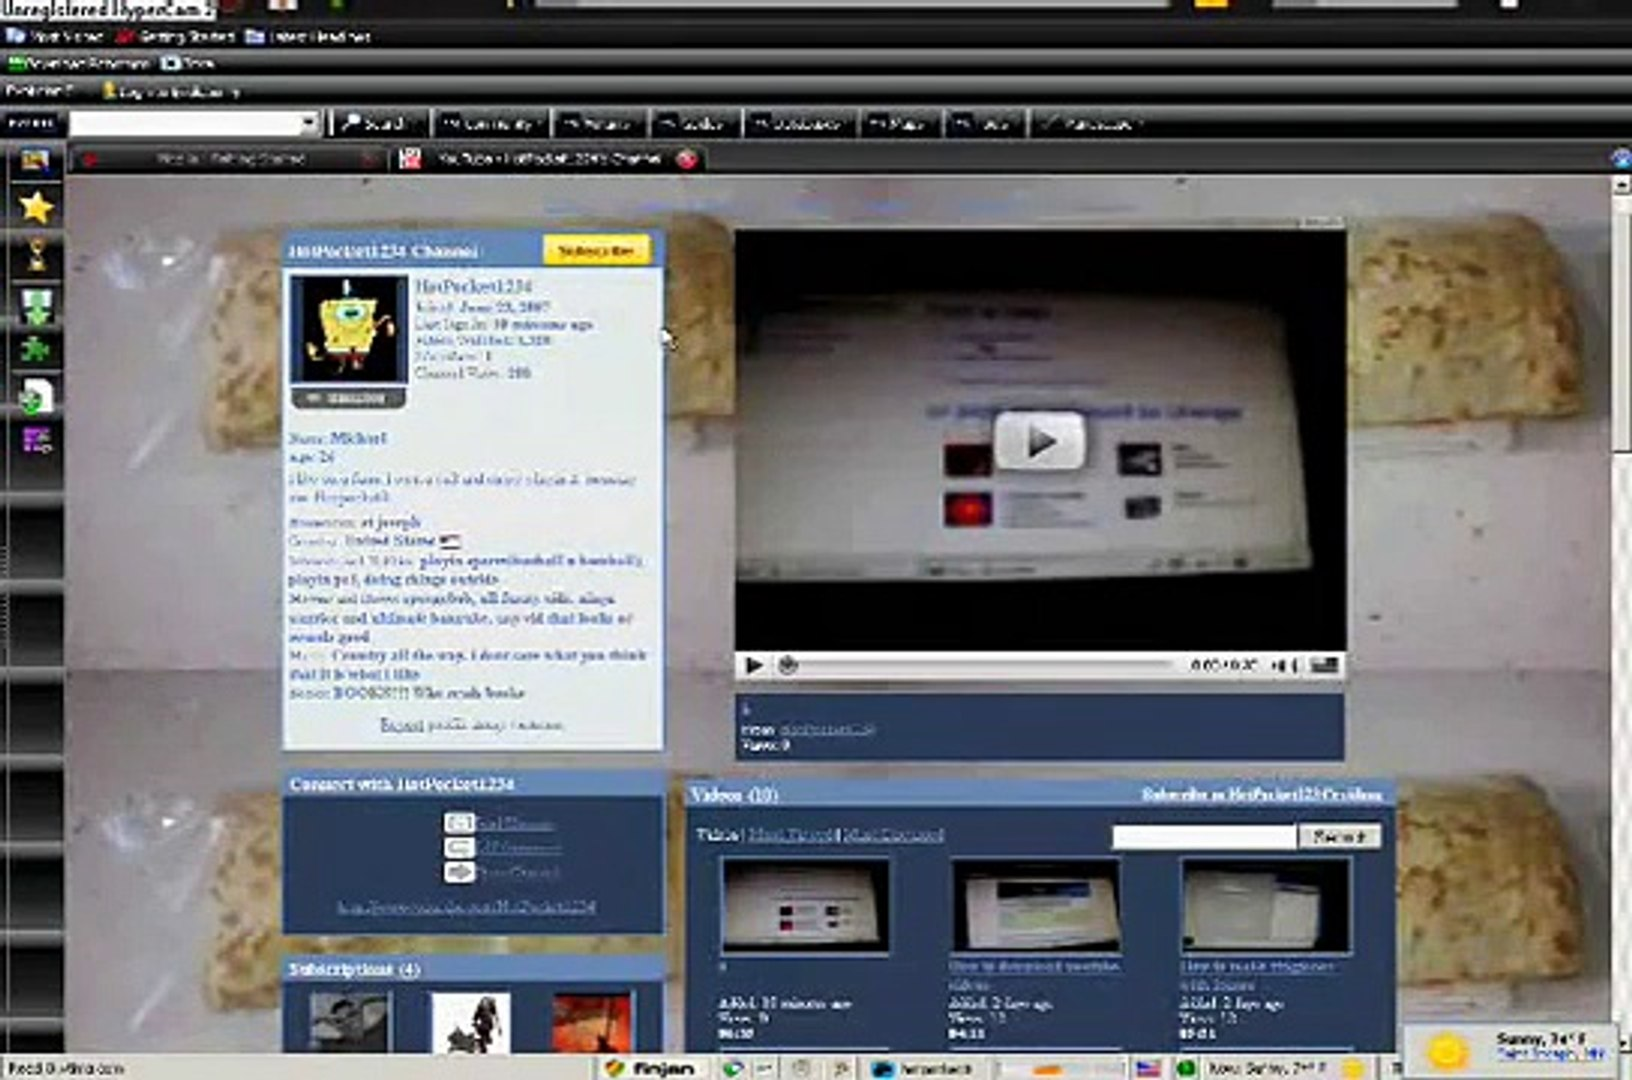 HOW TO install rockbox on a ipod nano 1g 1gb!!! UPDATED LINK!!!